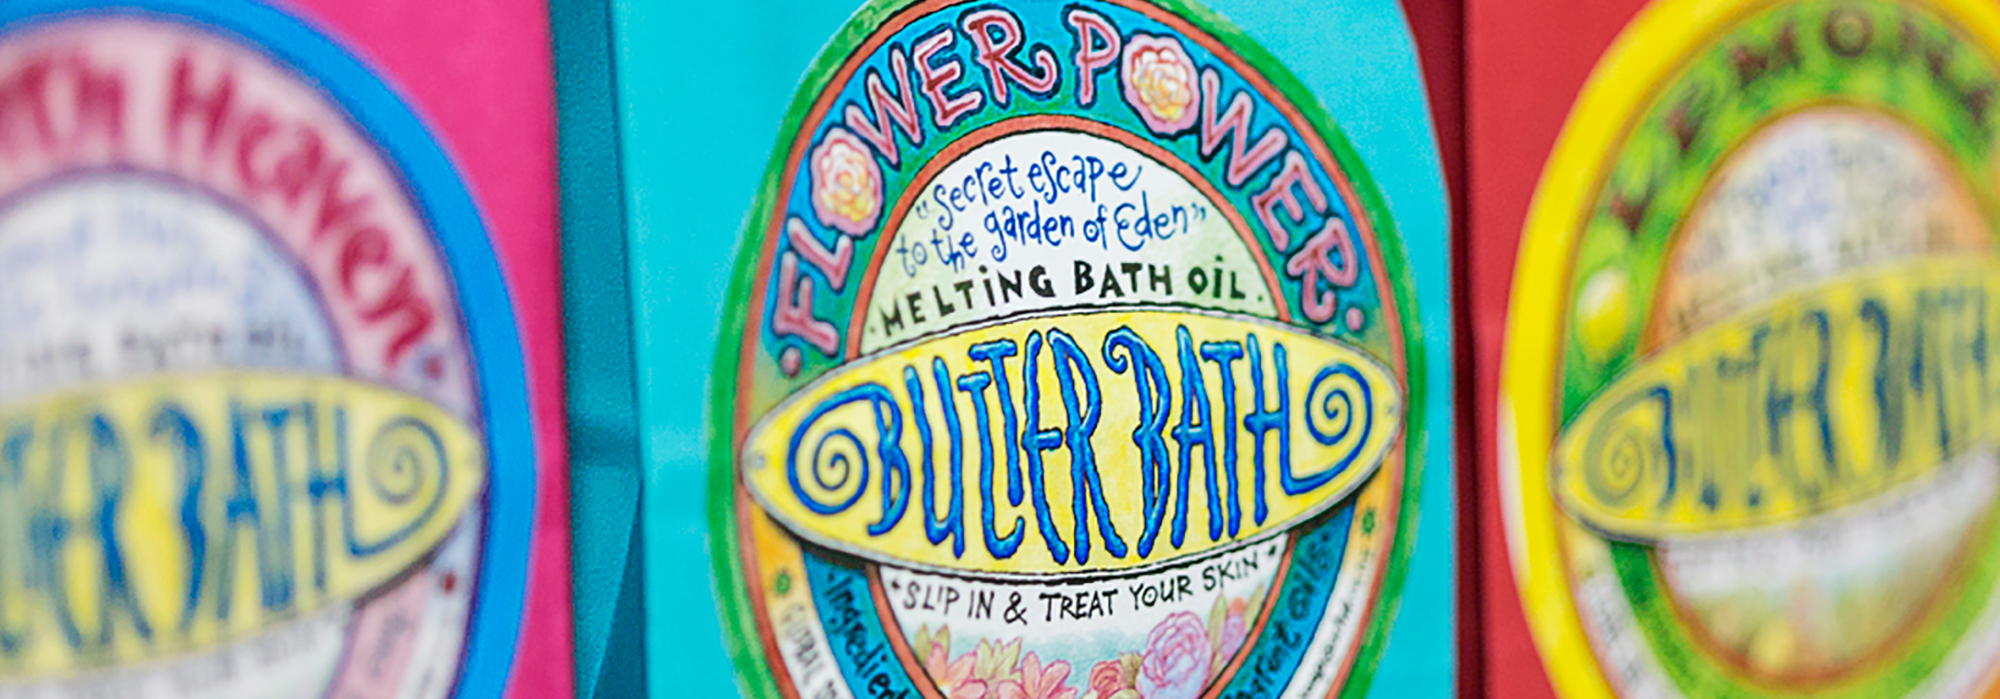 Global Soap New Zealand Butter bath Products